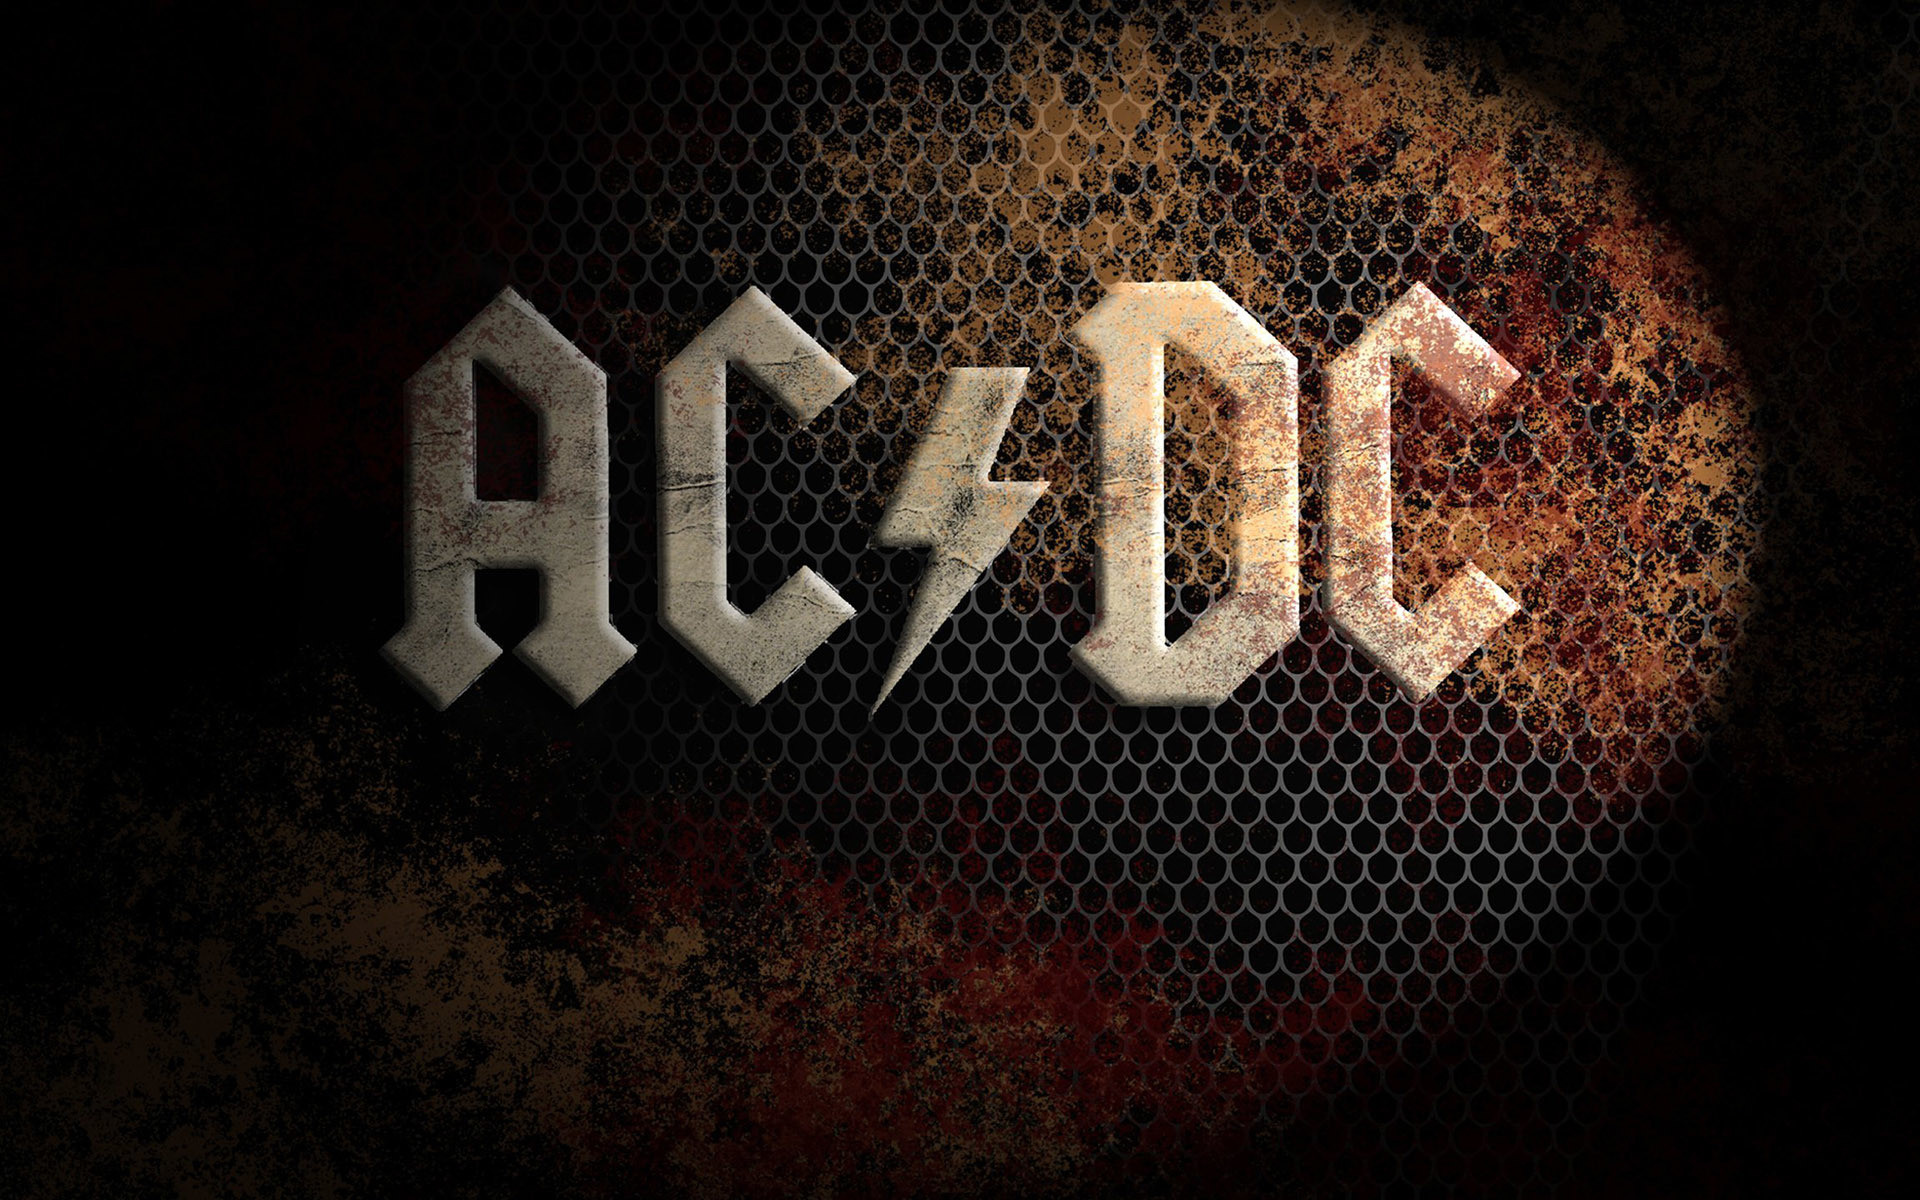 Acdc wallpaper 68 pictures - Ac dc wallpaper for android ...